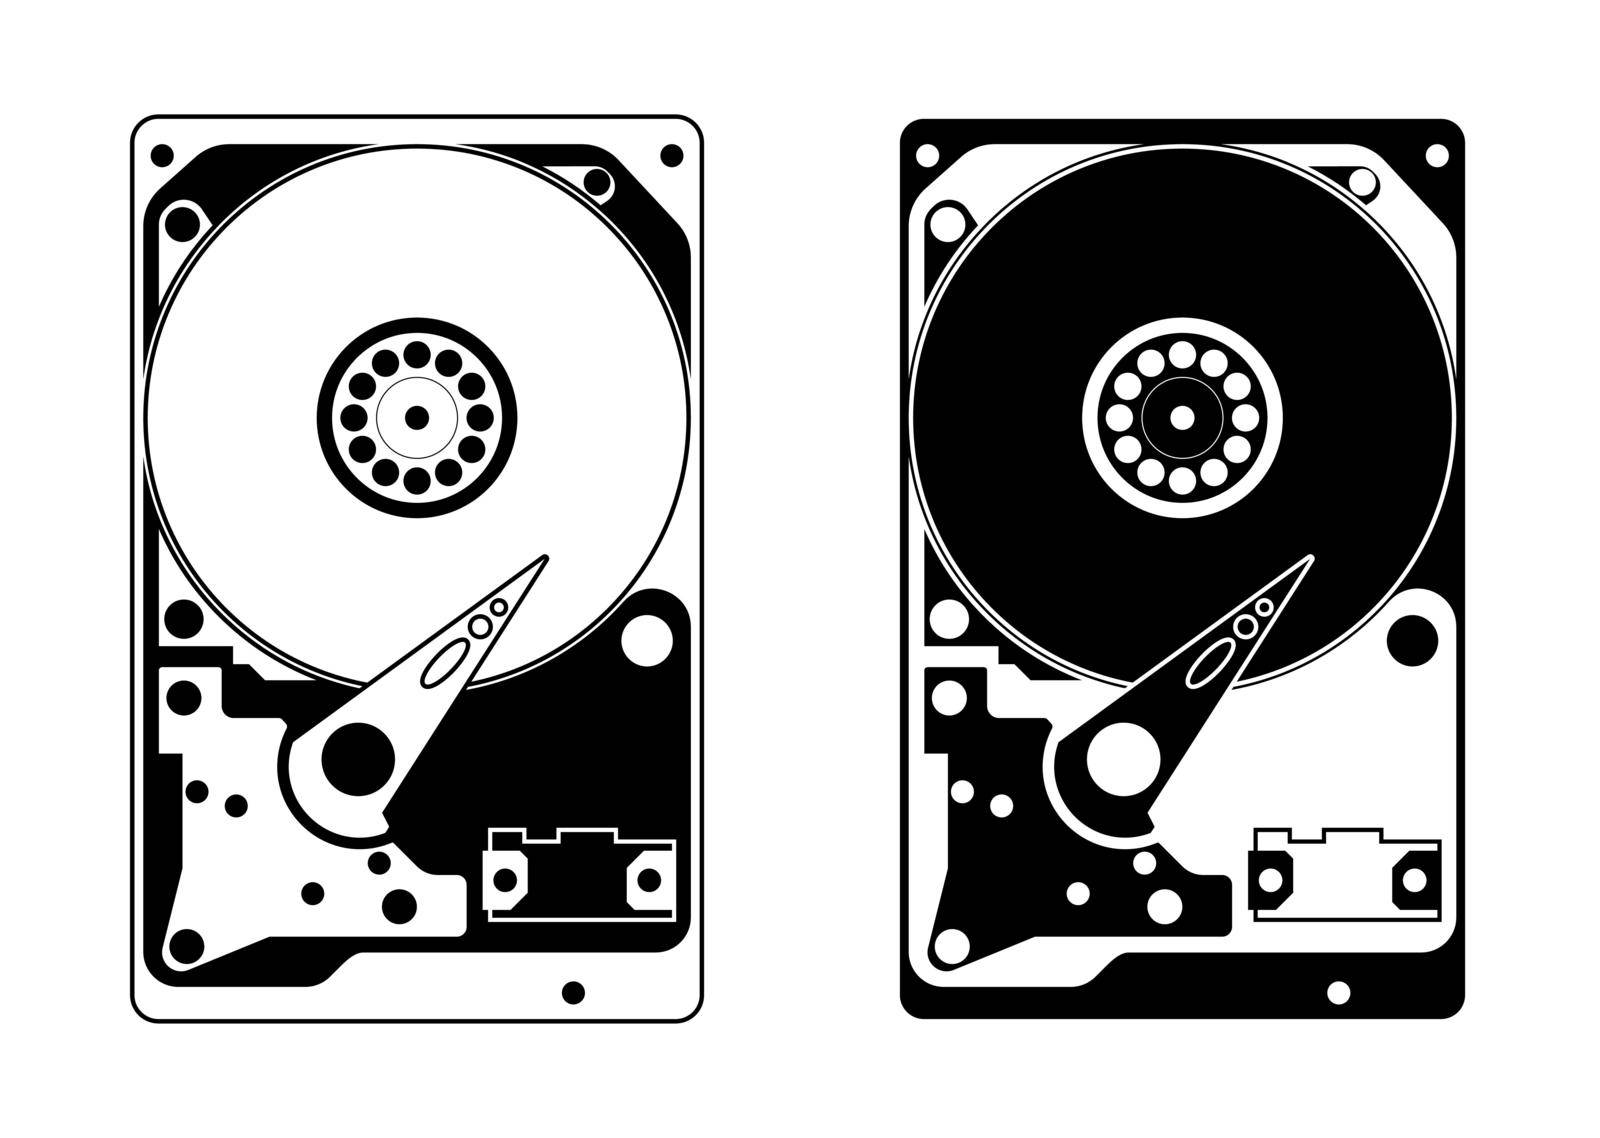 Hard drive without a top cover with internal device and mechanisms. In a linear style, black and white icon. Isolated vector